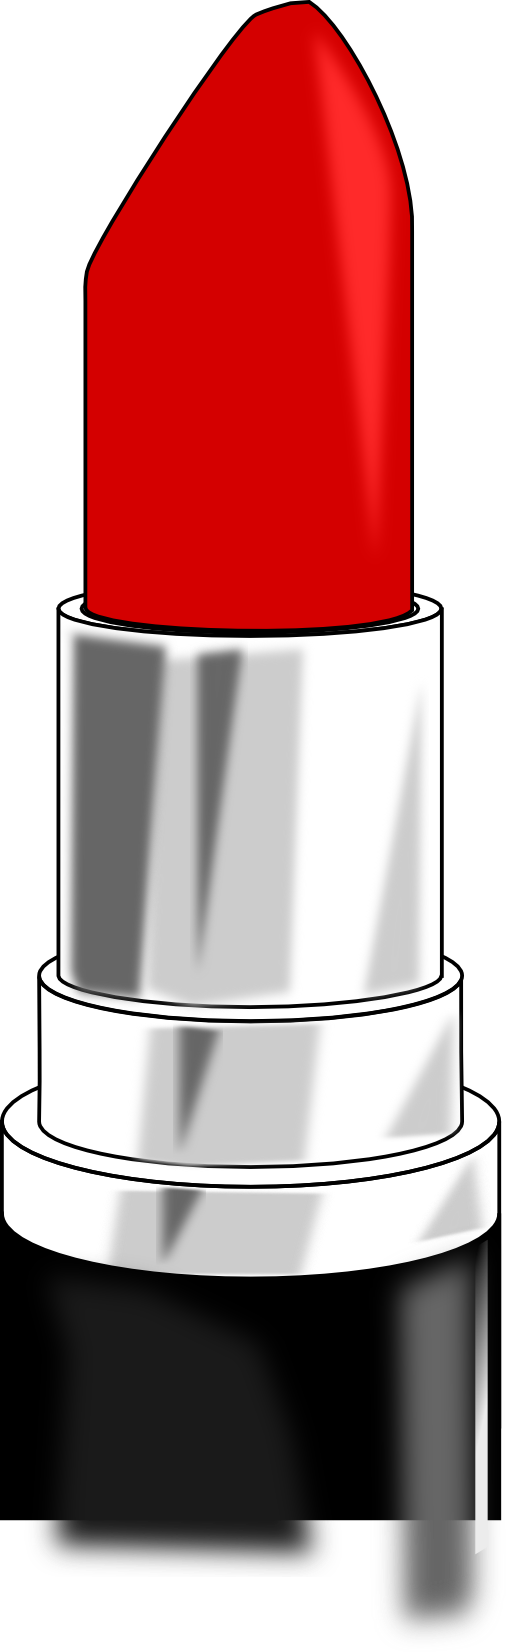 Girly clipart lipstick. Pictures of make cliparts